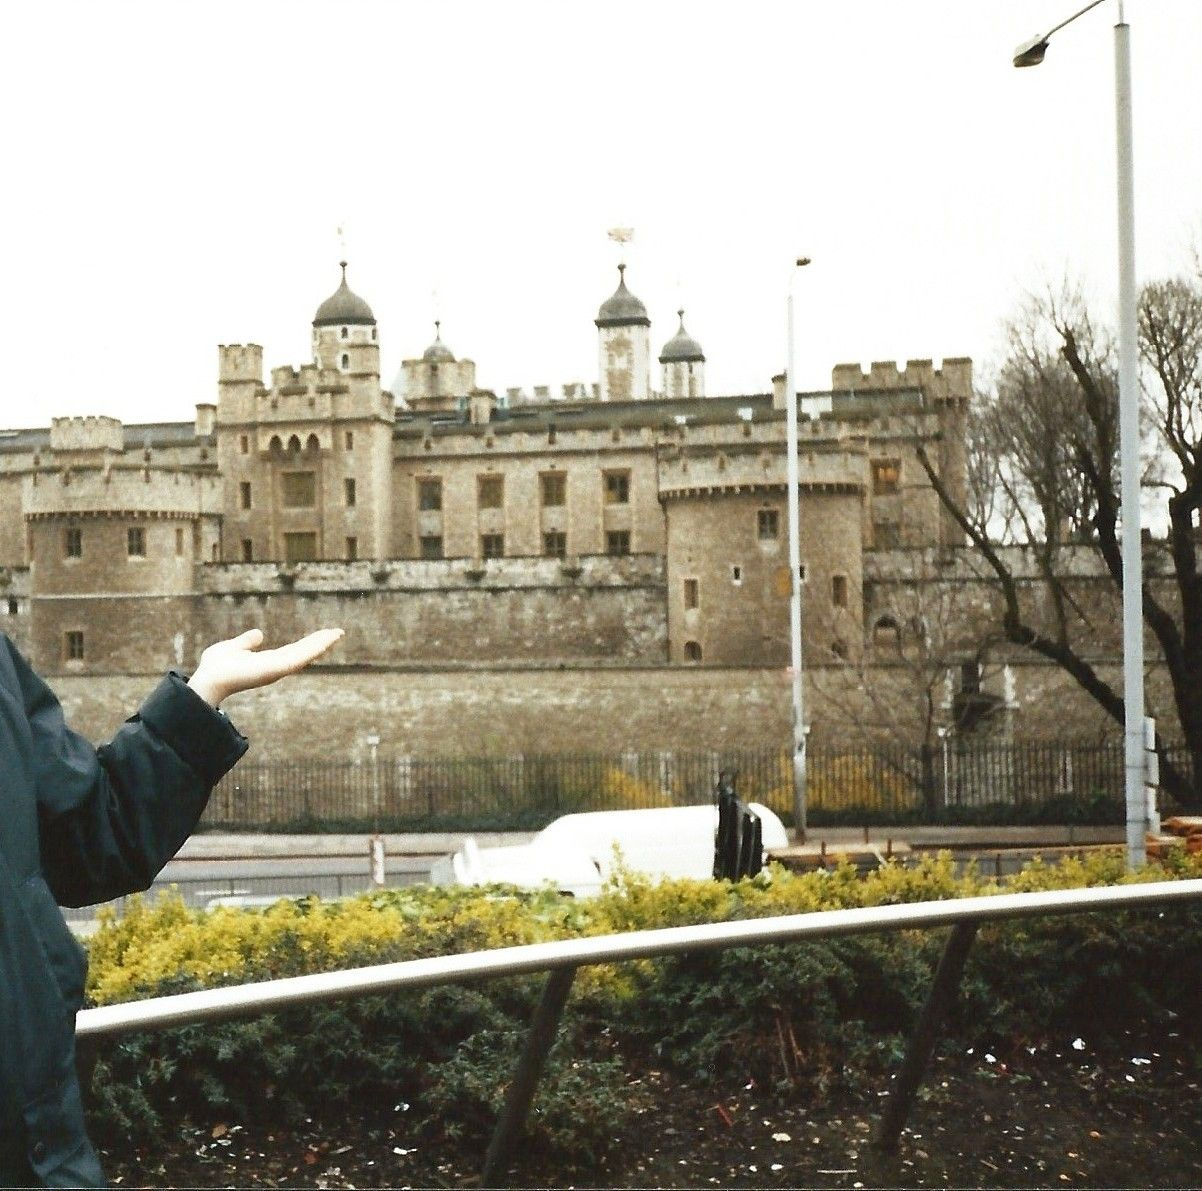 1998 The Tower of London